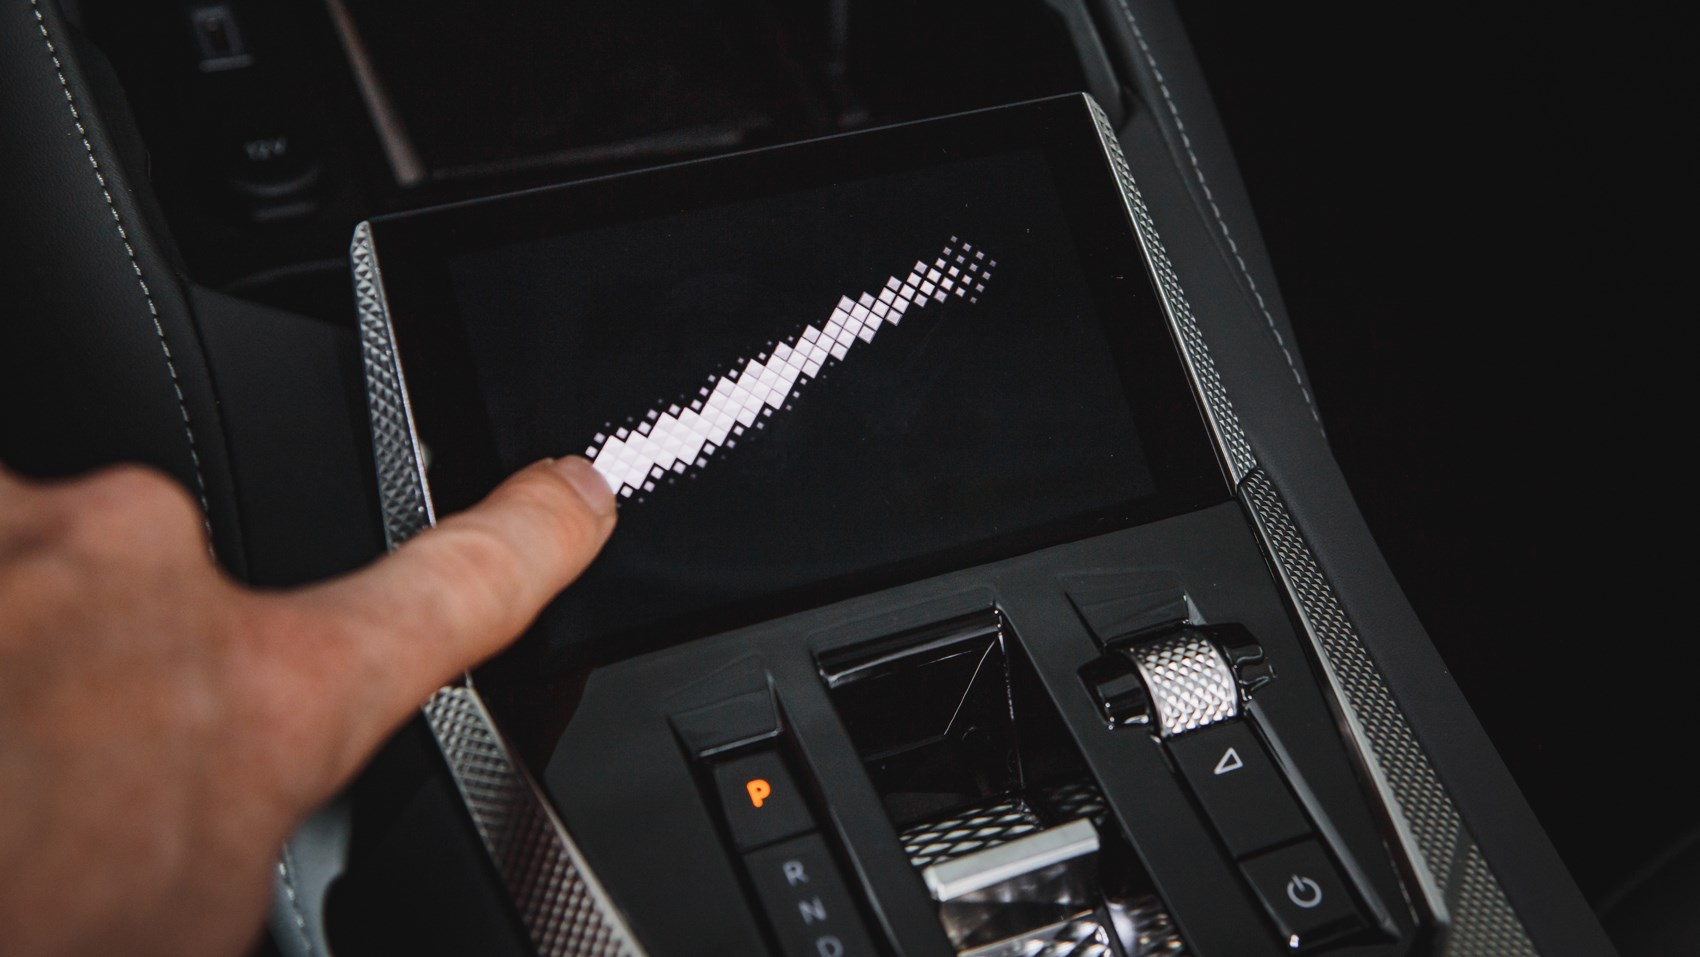 ds4 touch panel